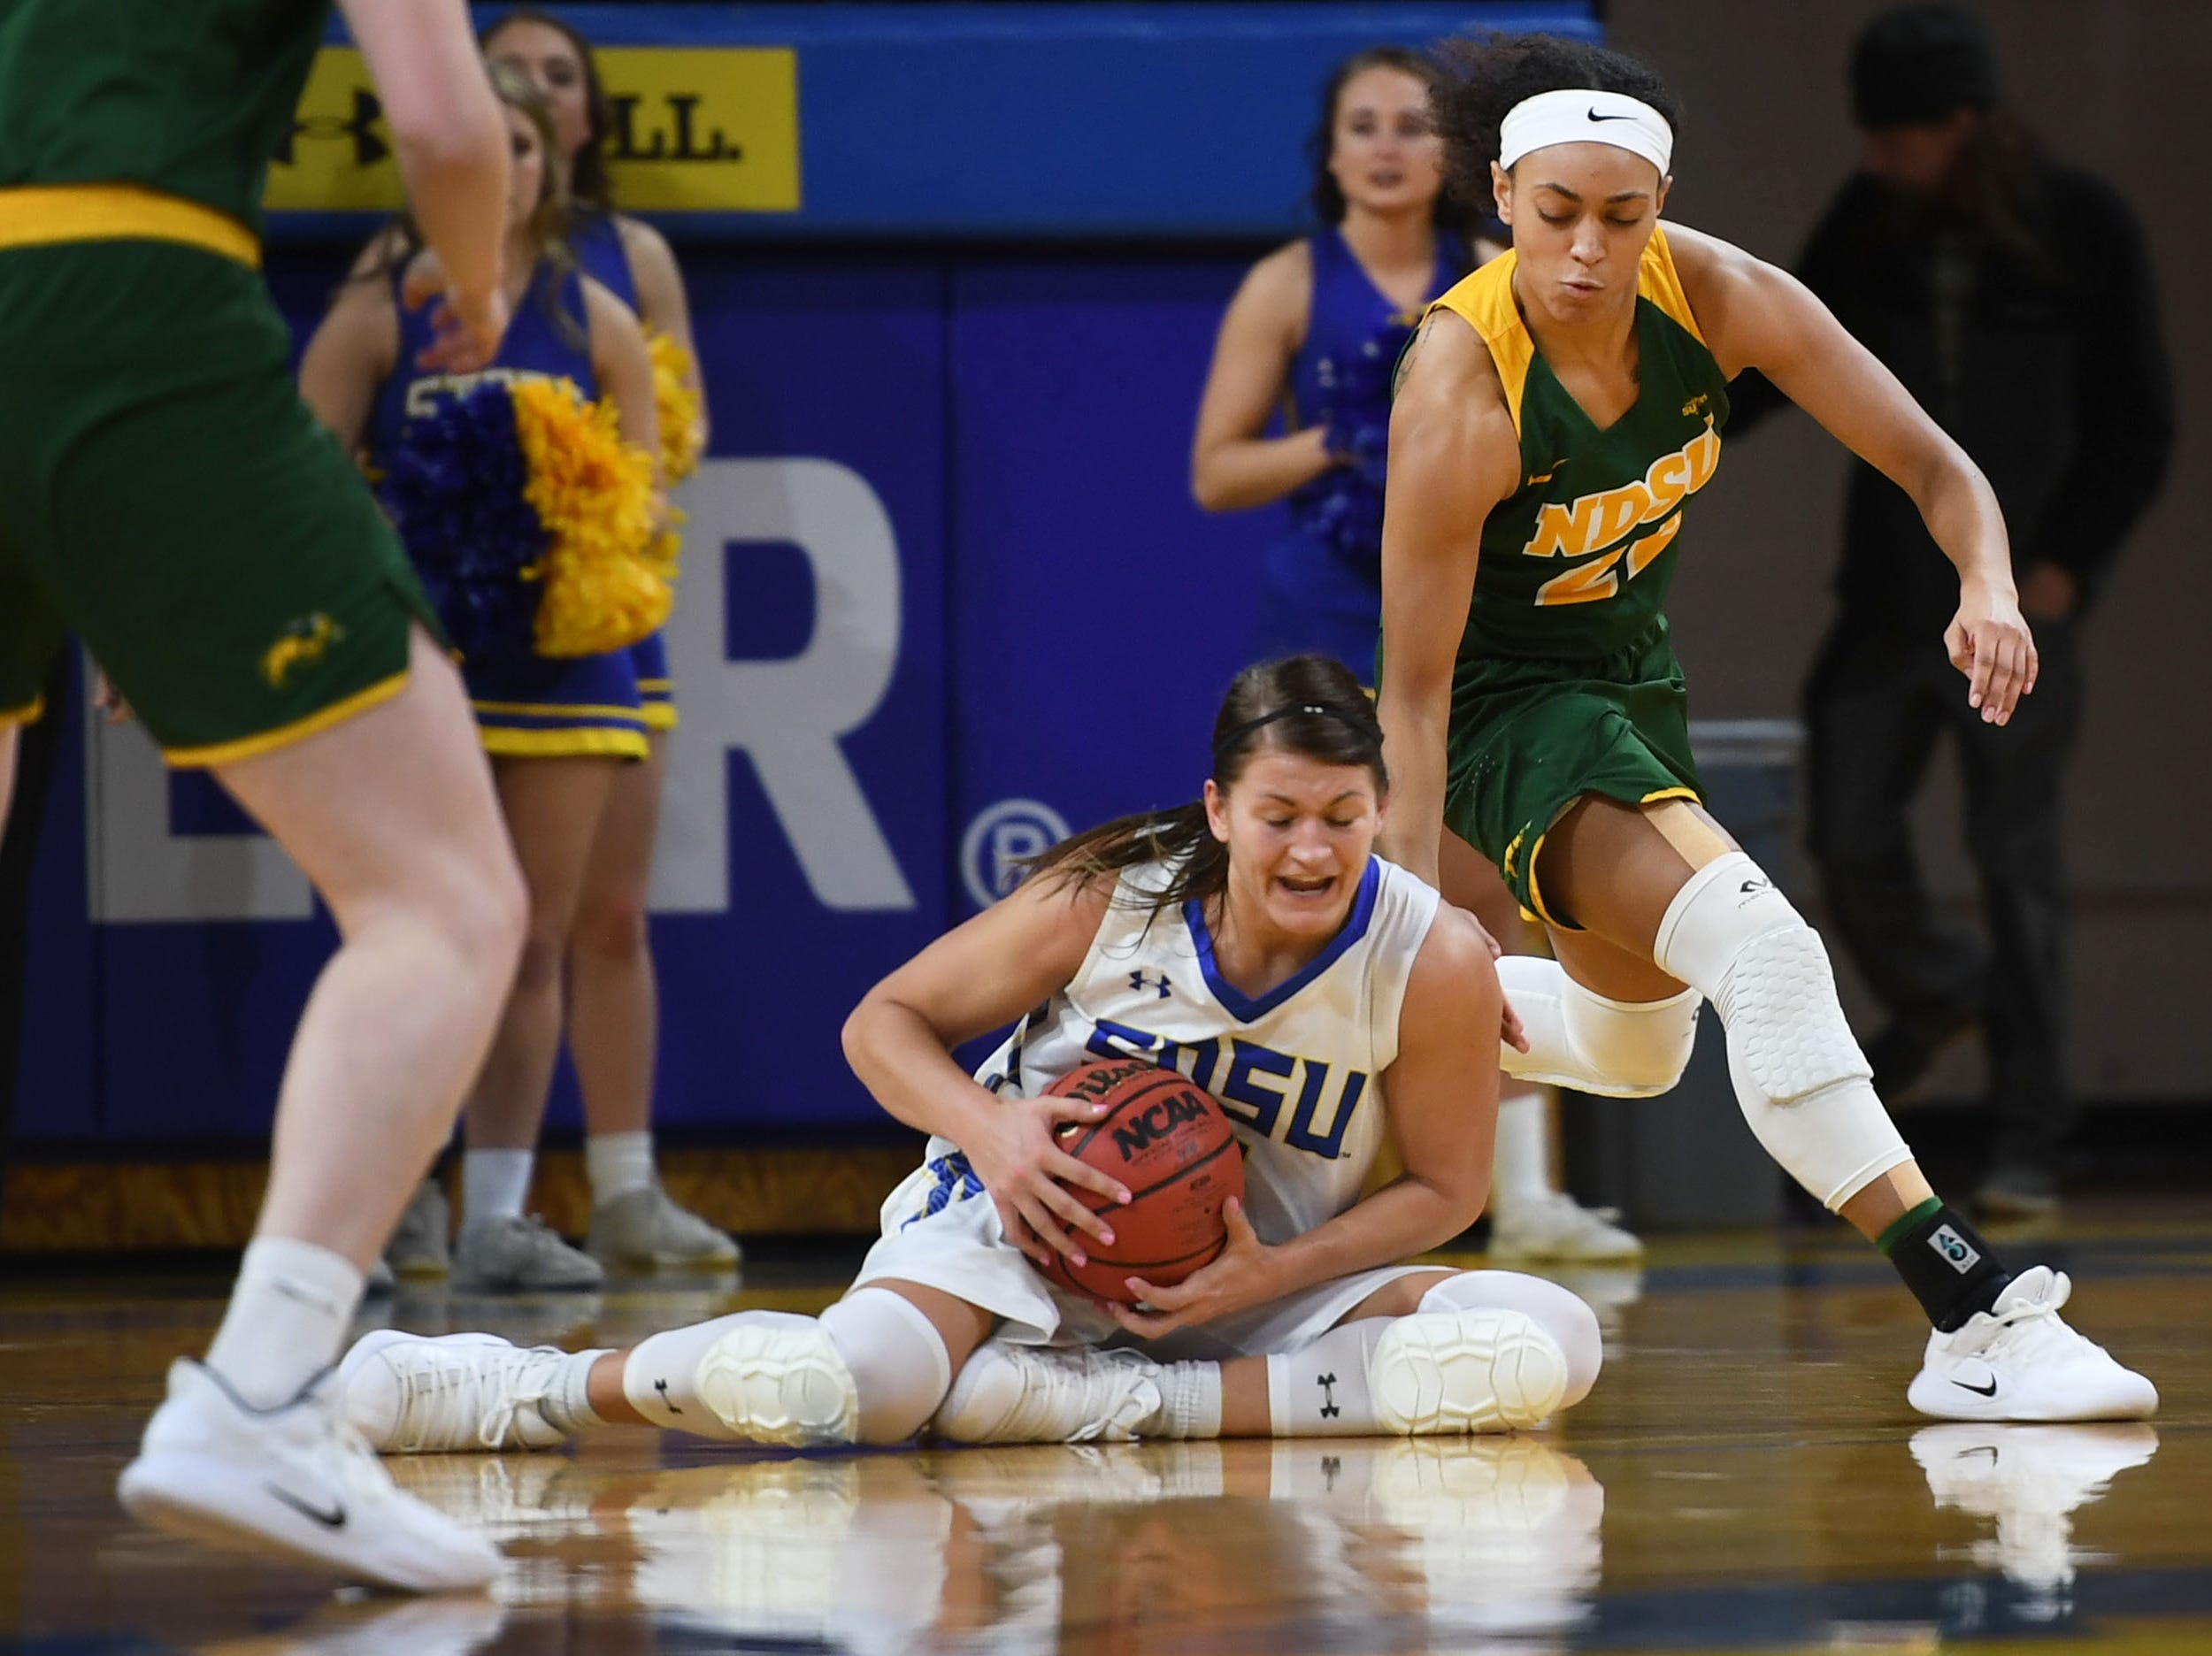 SDSU's Macy Miller hangs onto the ball during the game against NDSU's Tyrah Spencer Wednesday, Jan. 23, at Frost Arena in Brookings.